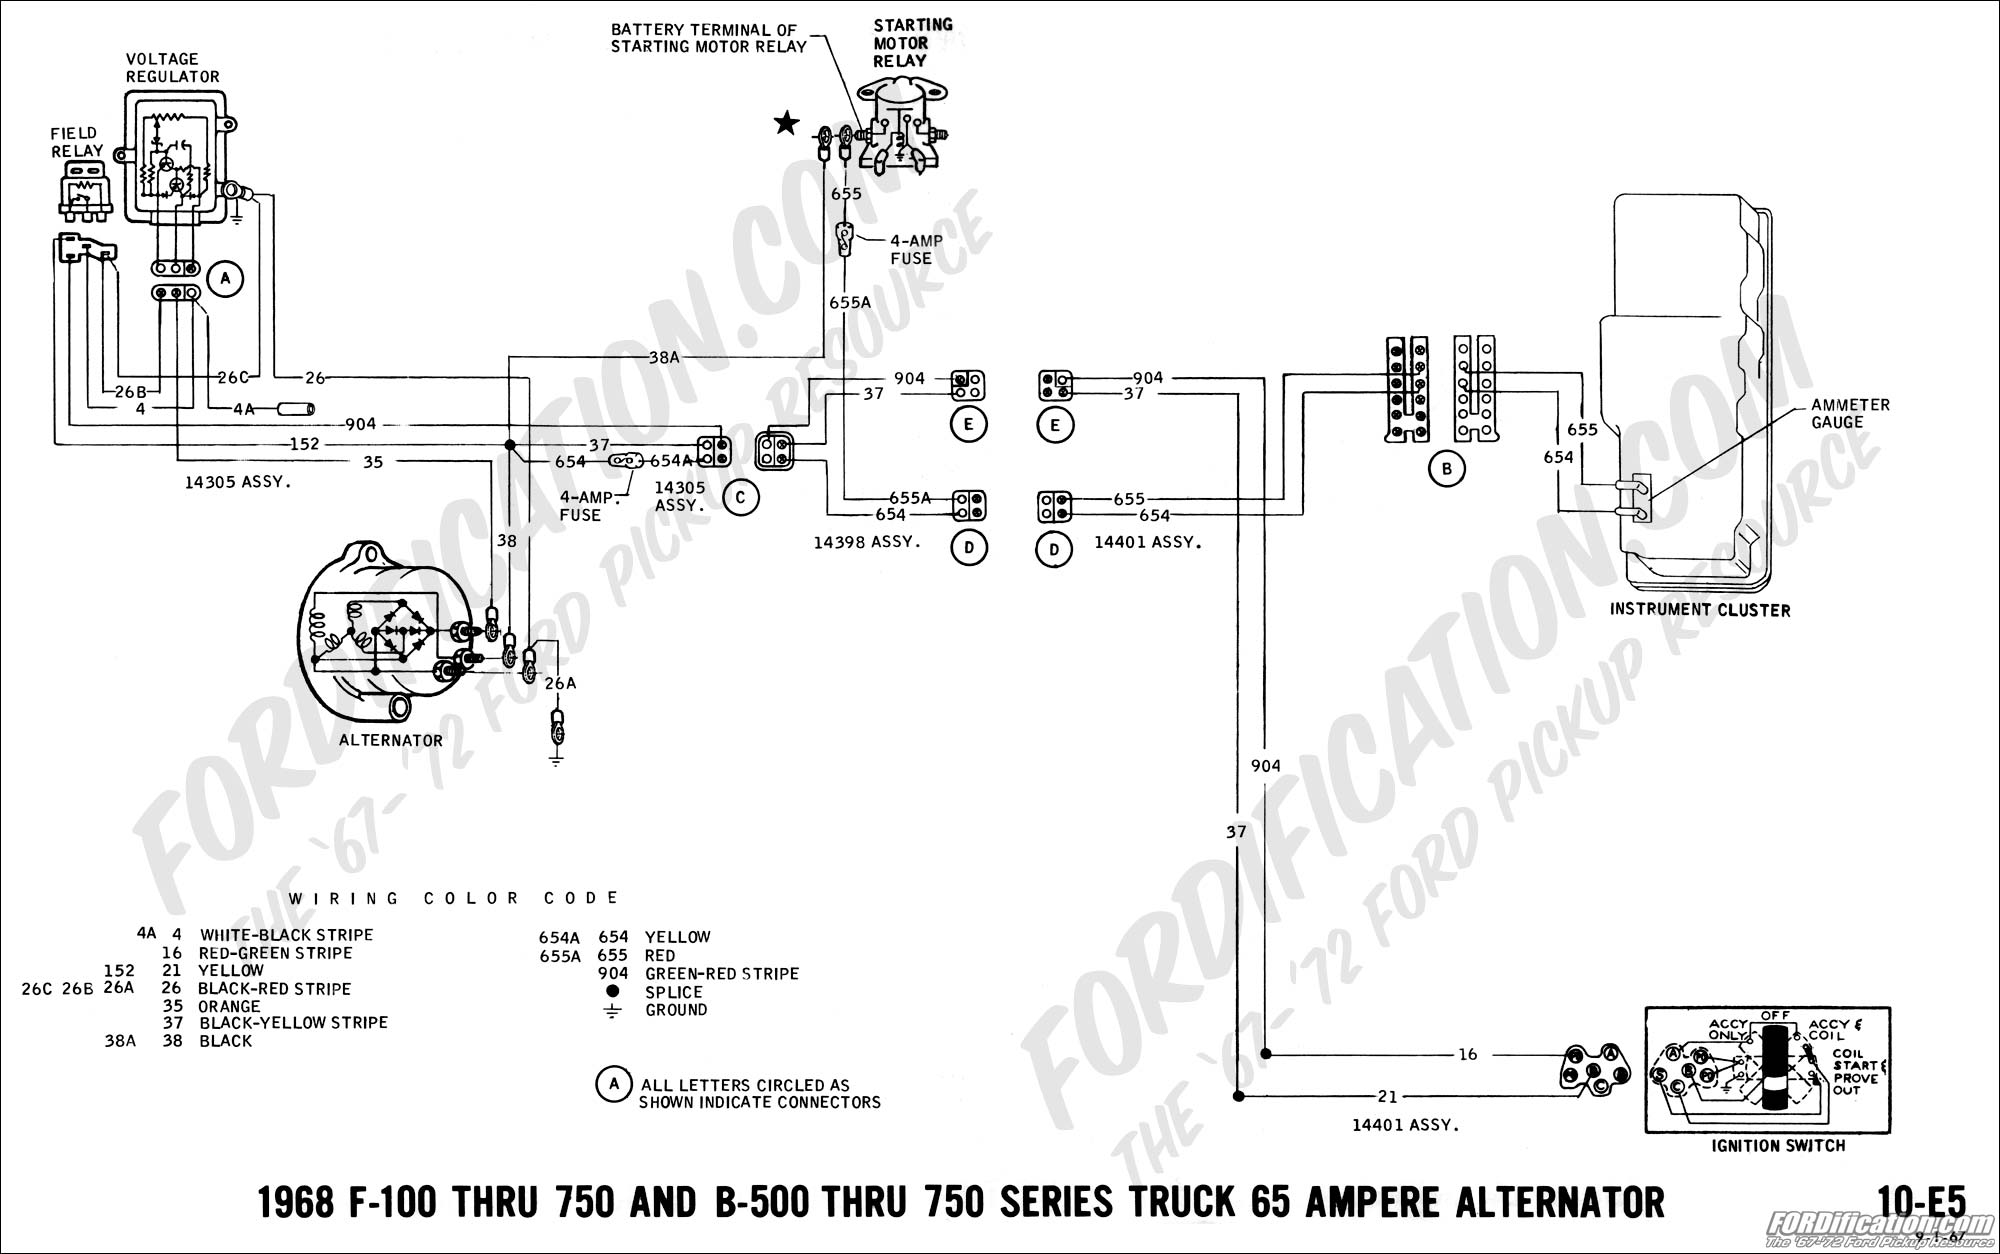 68 07 ford truck technical drawings and schematics section h wiring 1988 ford ranger alternator wiring diagram at panicattacktreatment.co